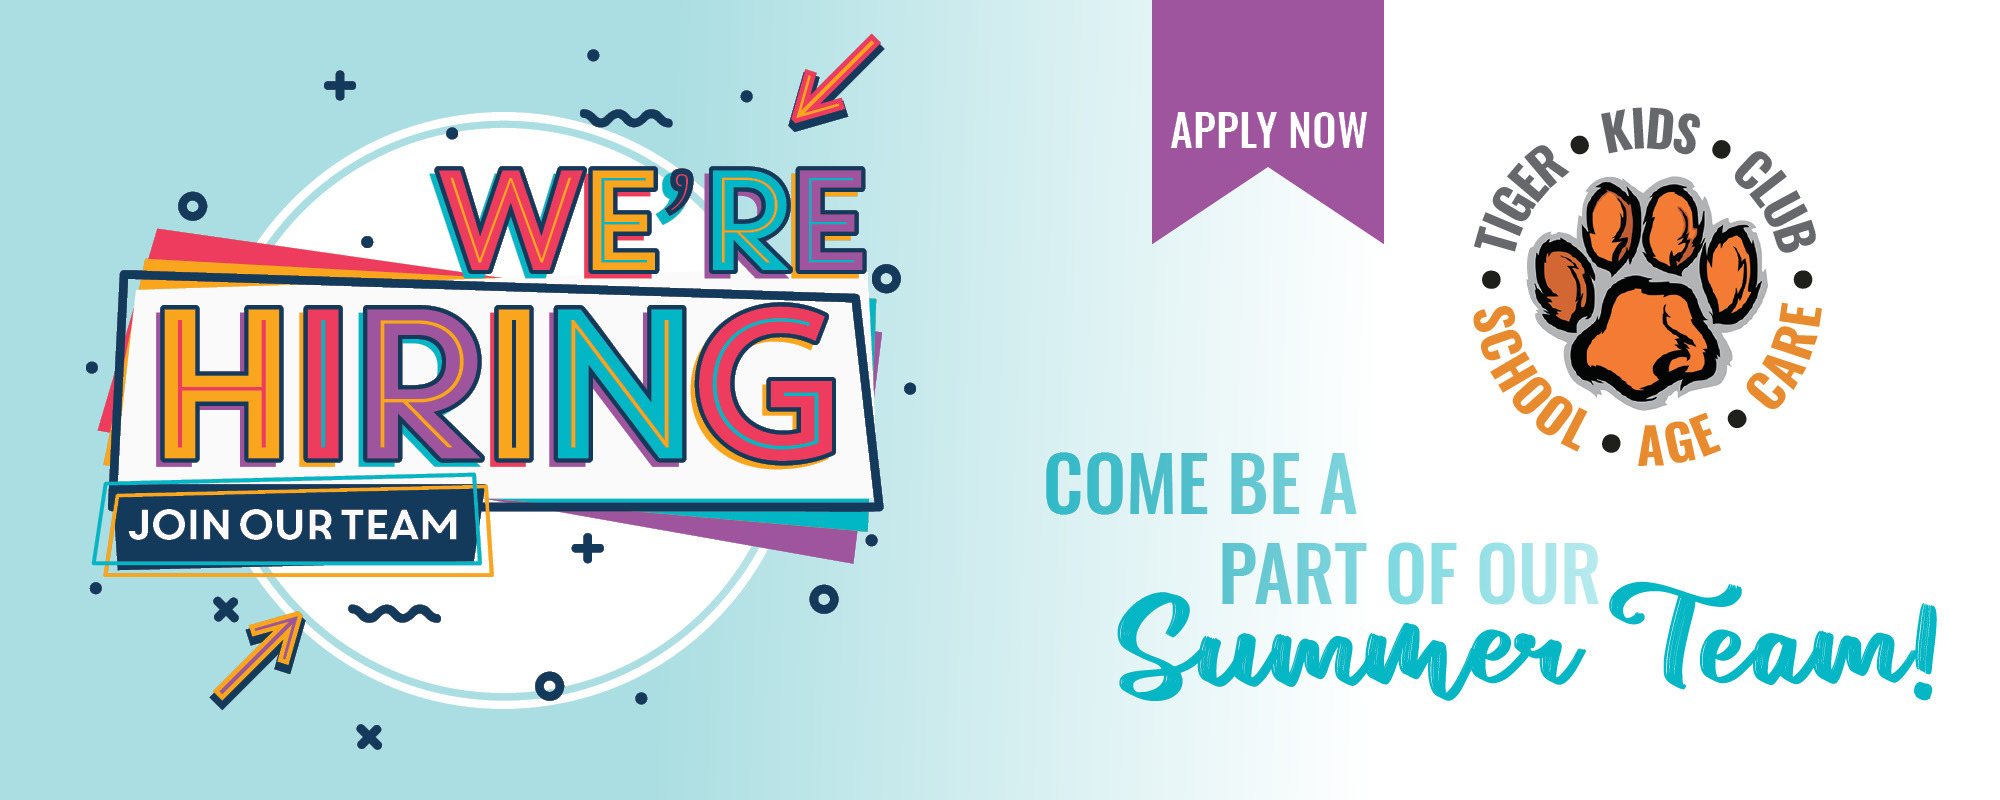 TKC Summer is Hiring!